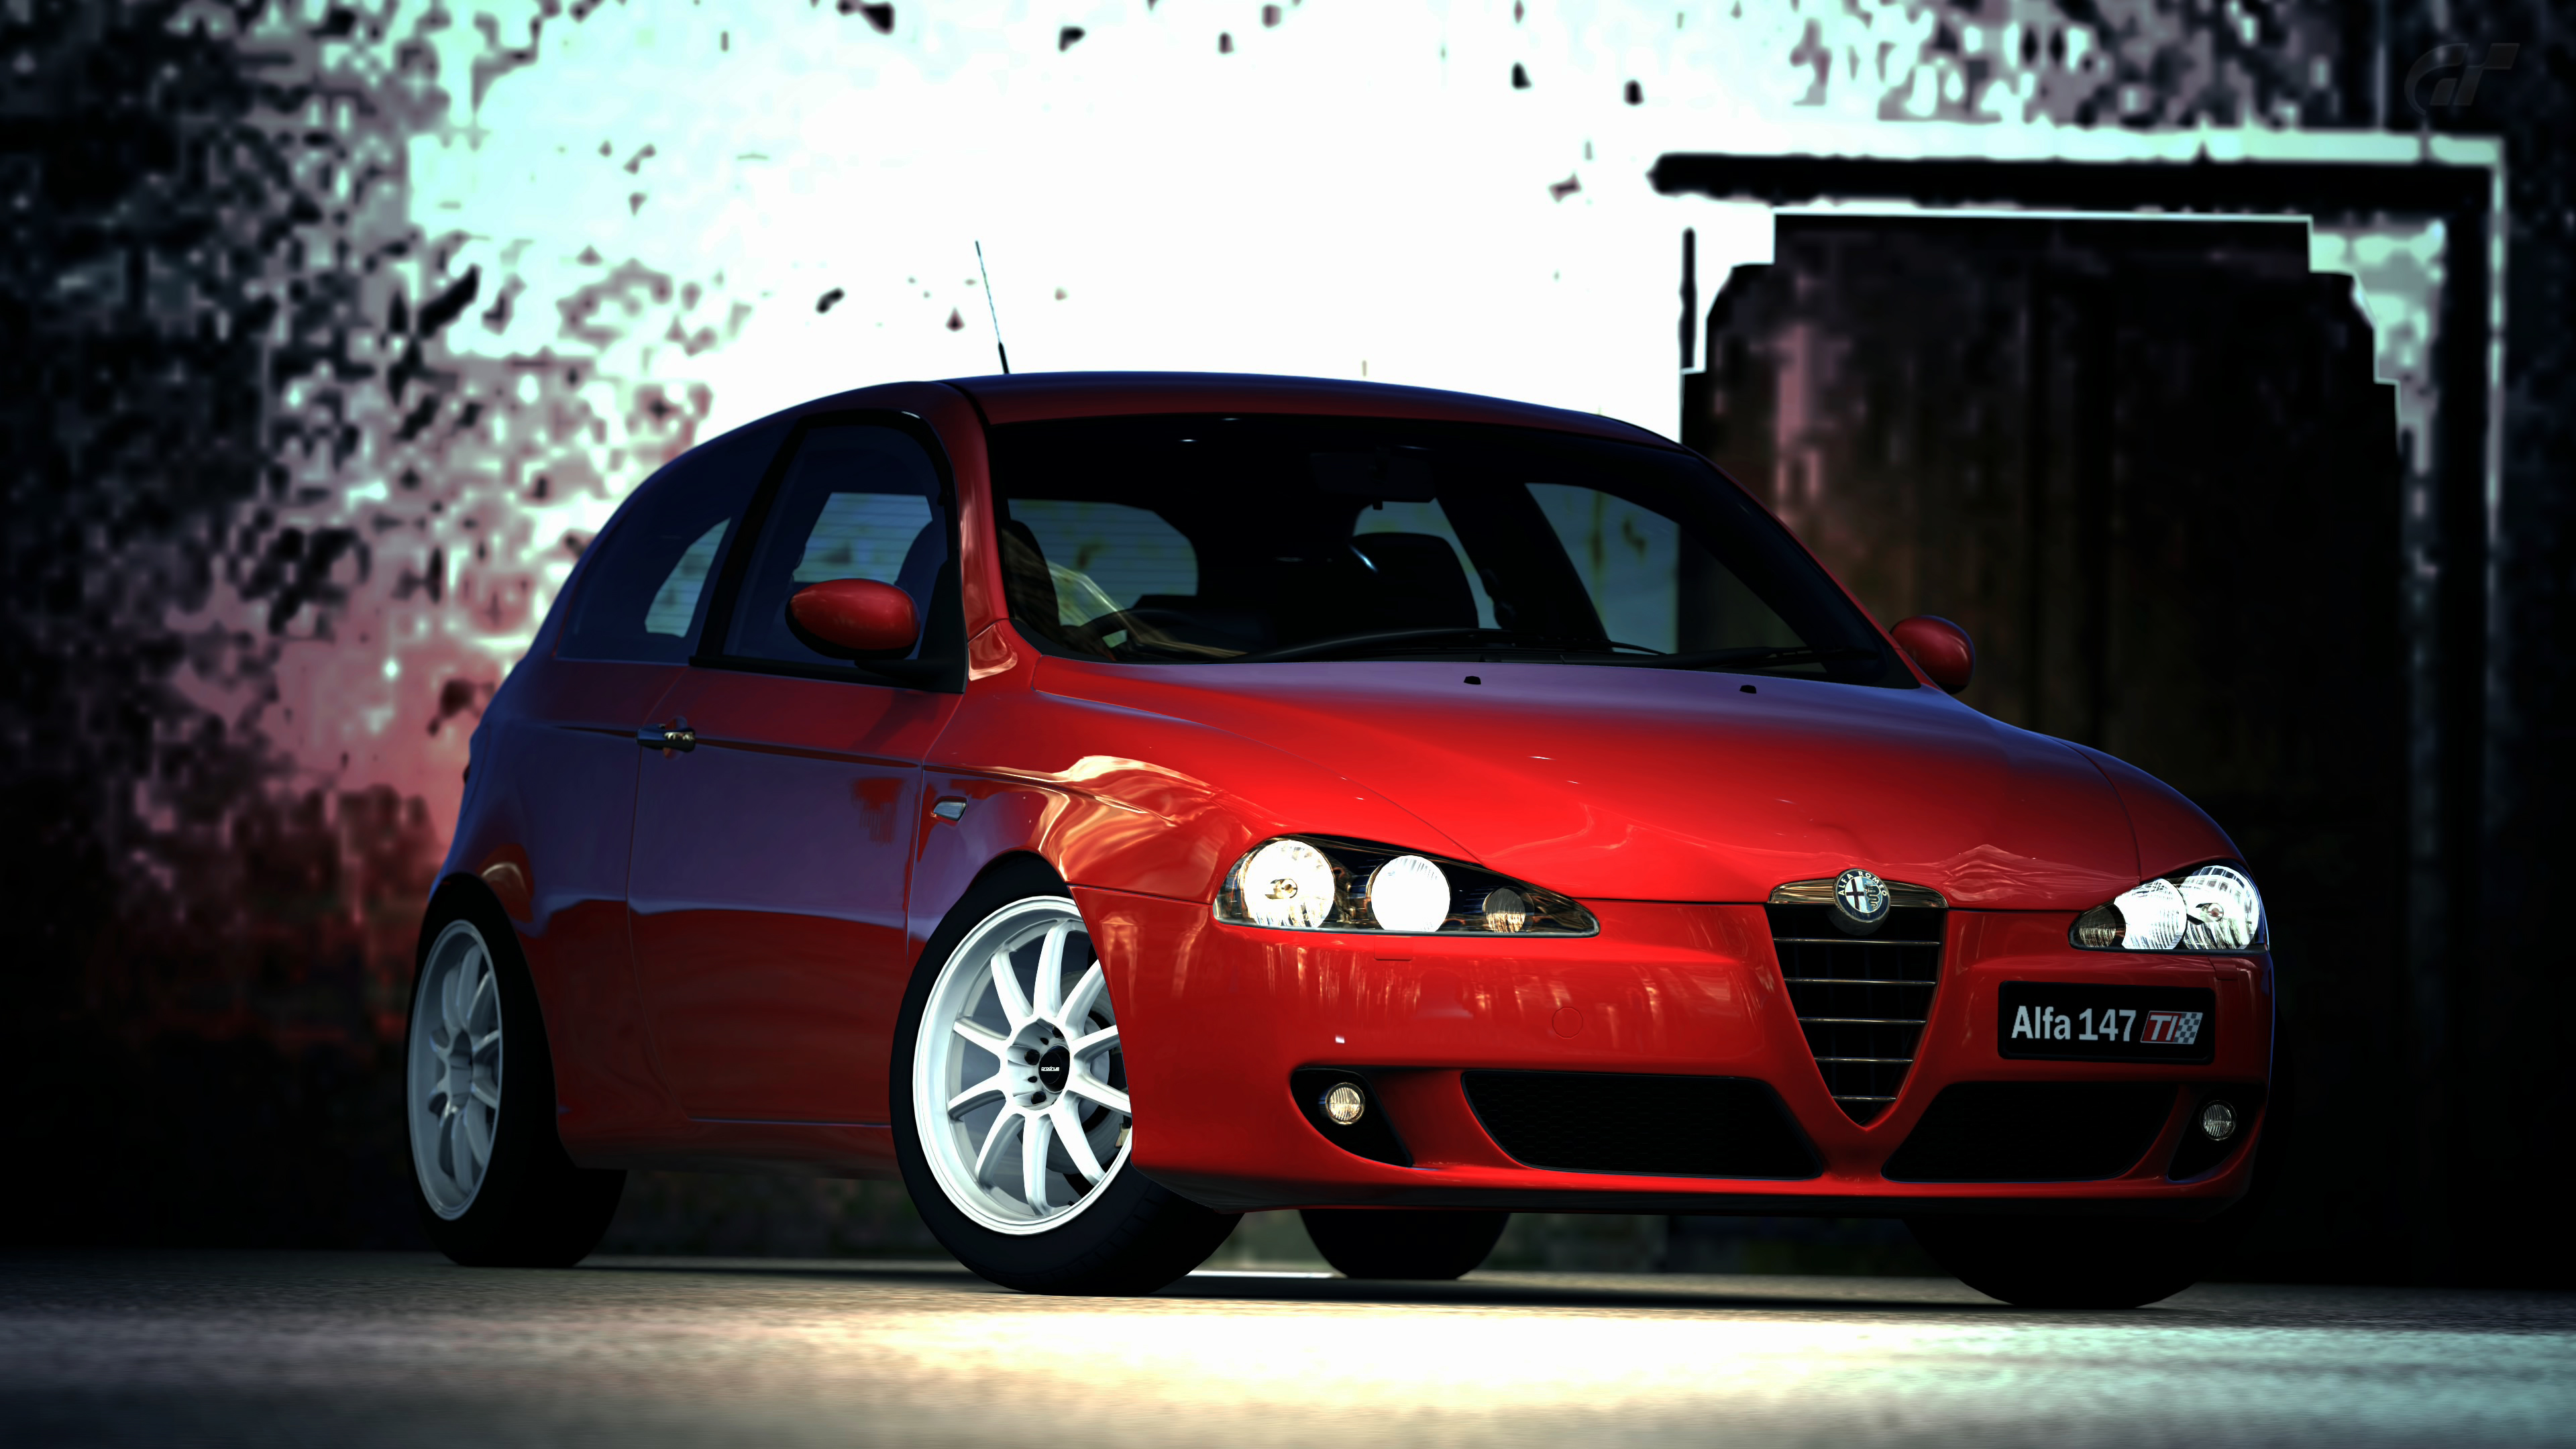 2006 alfa romeo 147 ti gran turismo 5 by vertualissimo on deviantart. Black Bedroom Furniture Sets. Home Design Ideas